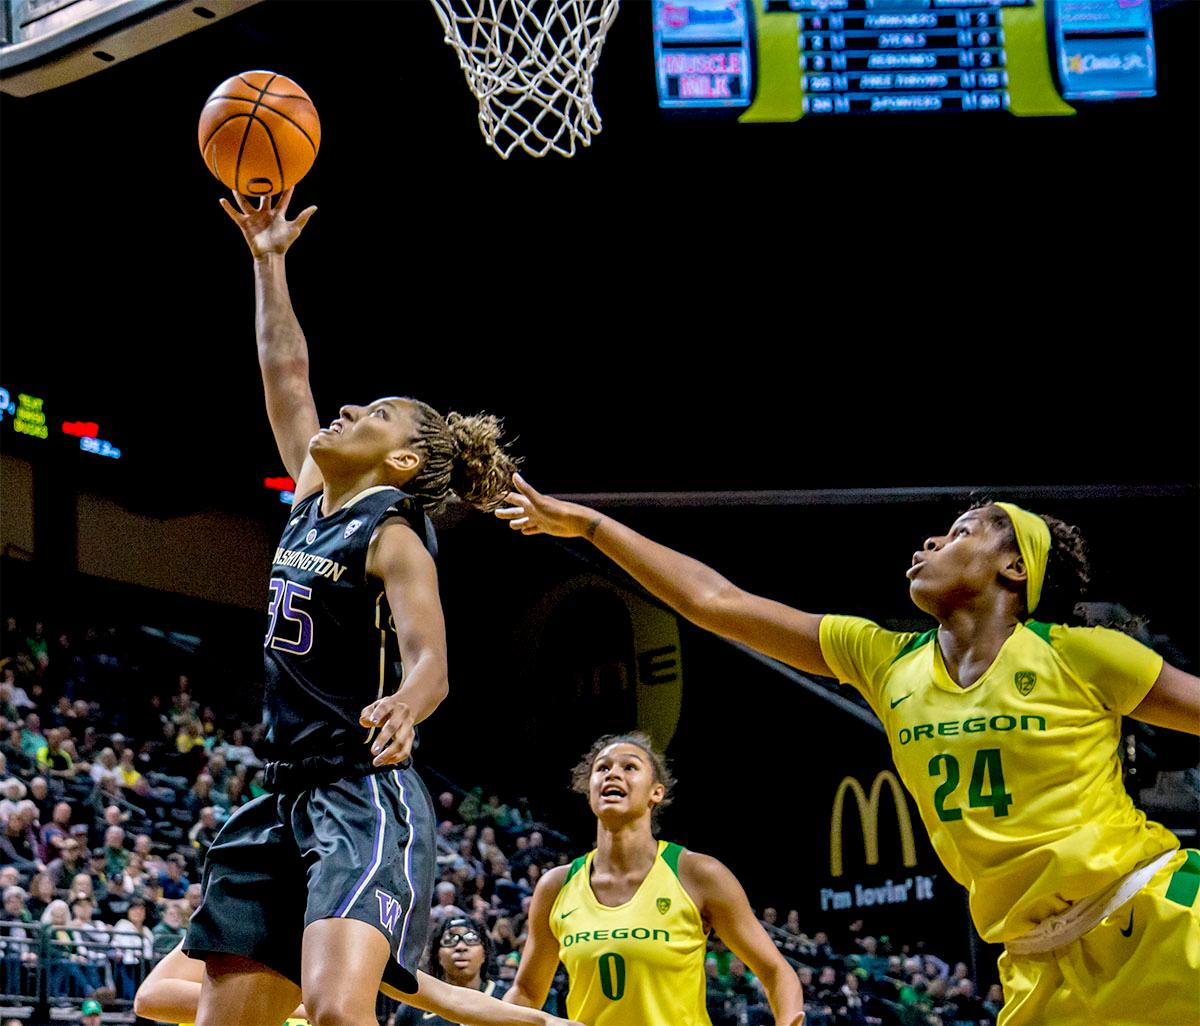 The Huskies' Alexis Griggsby (#35) goes up for the basket. The Oregon Ducks defeated the Washington Huskies 94-83 on Sunday at Matthew Knight Arena. The victory was Head Coach Kelly Graves' 500th career win. Sabrina Ionescu also set the new NCAA all time record of 8 triple doubles in just 48 games. The previous record was 7 triple doubles in 124 games, held by Susie McConnell at Penn State. The Ducks will next face off against USC on Friday January 5th in Los Angeles. Photo by Rhianna Gelhart, Oregon News Lab